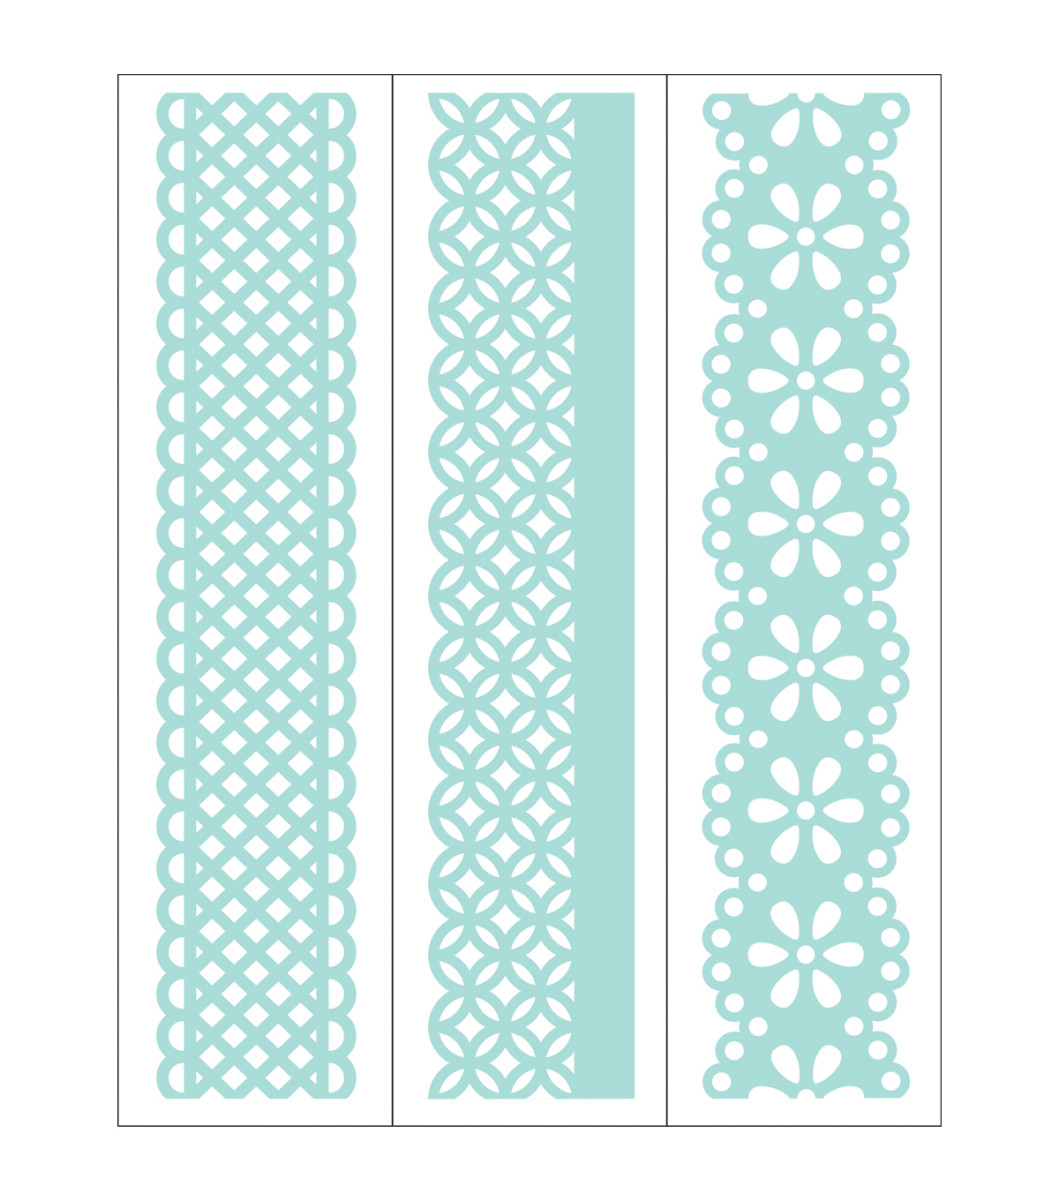 Examples of borders. They create very dimensional additions for your cards, scrapbook pages and journals